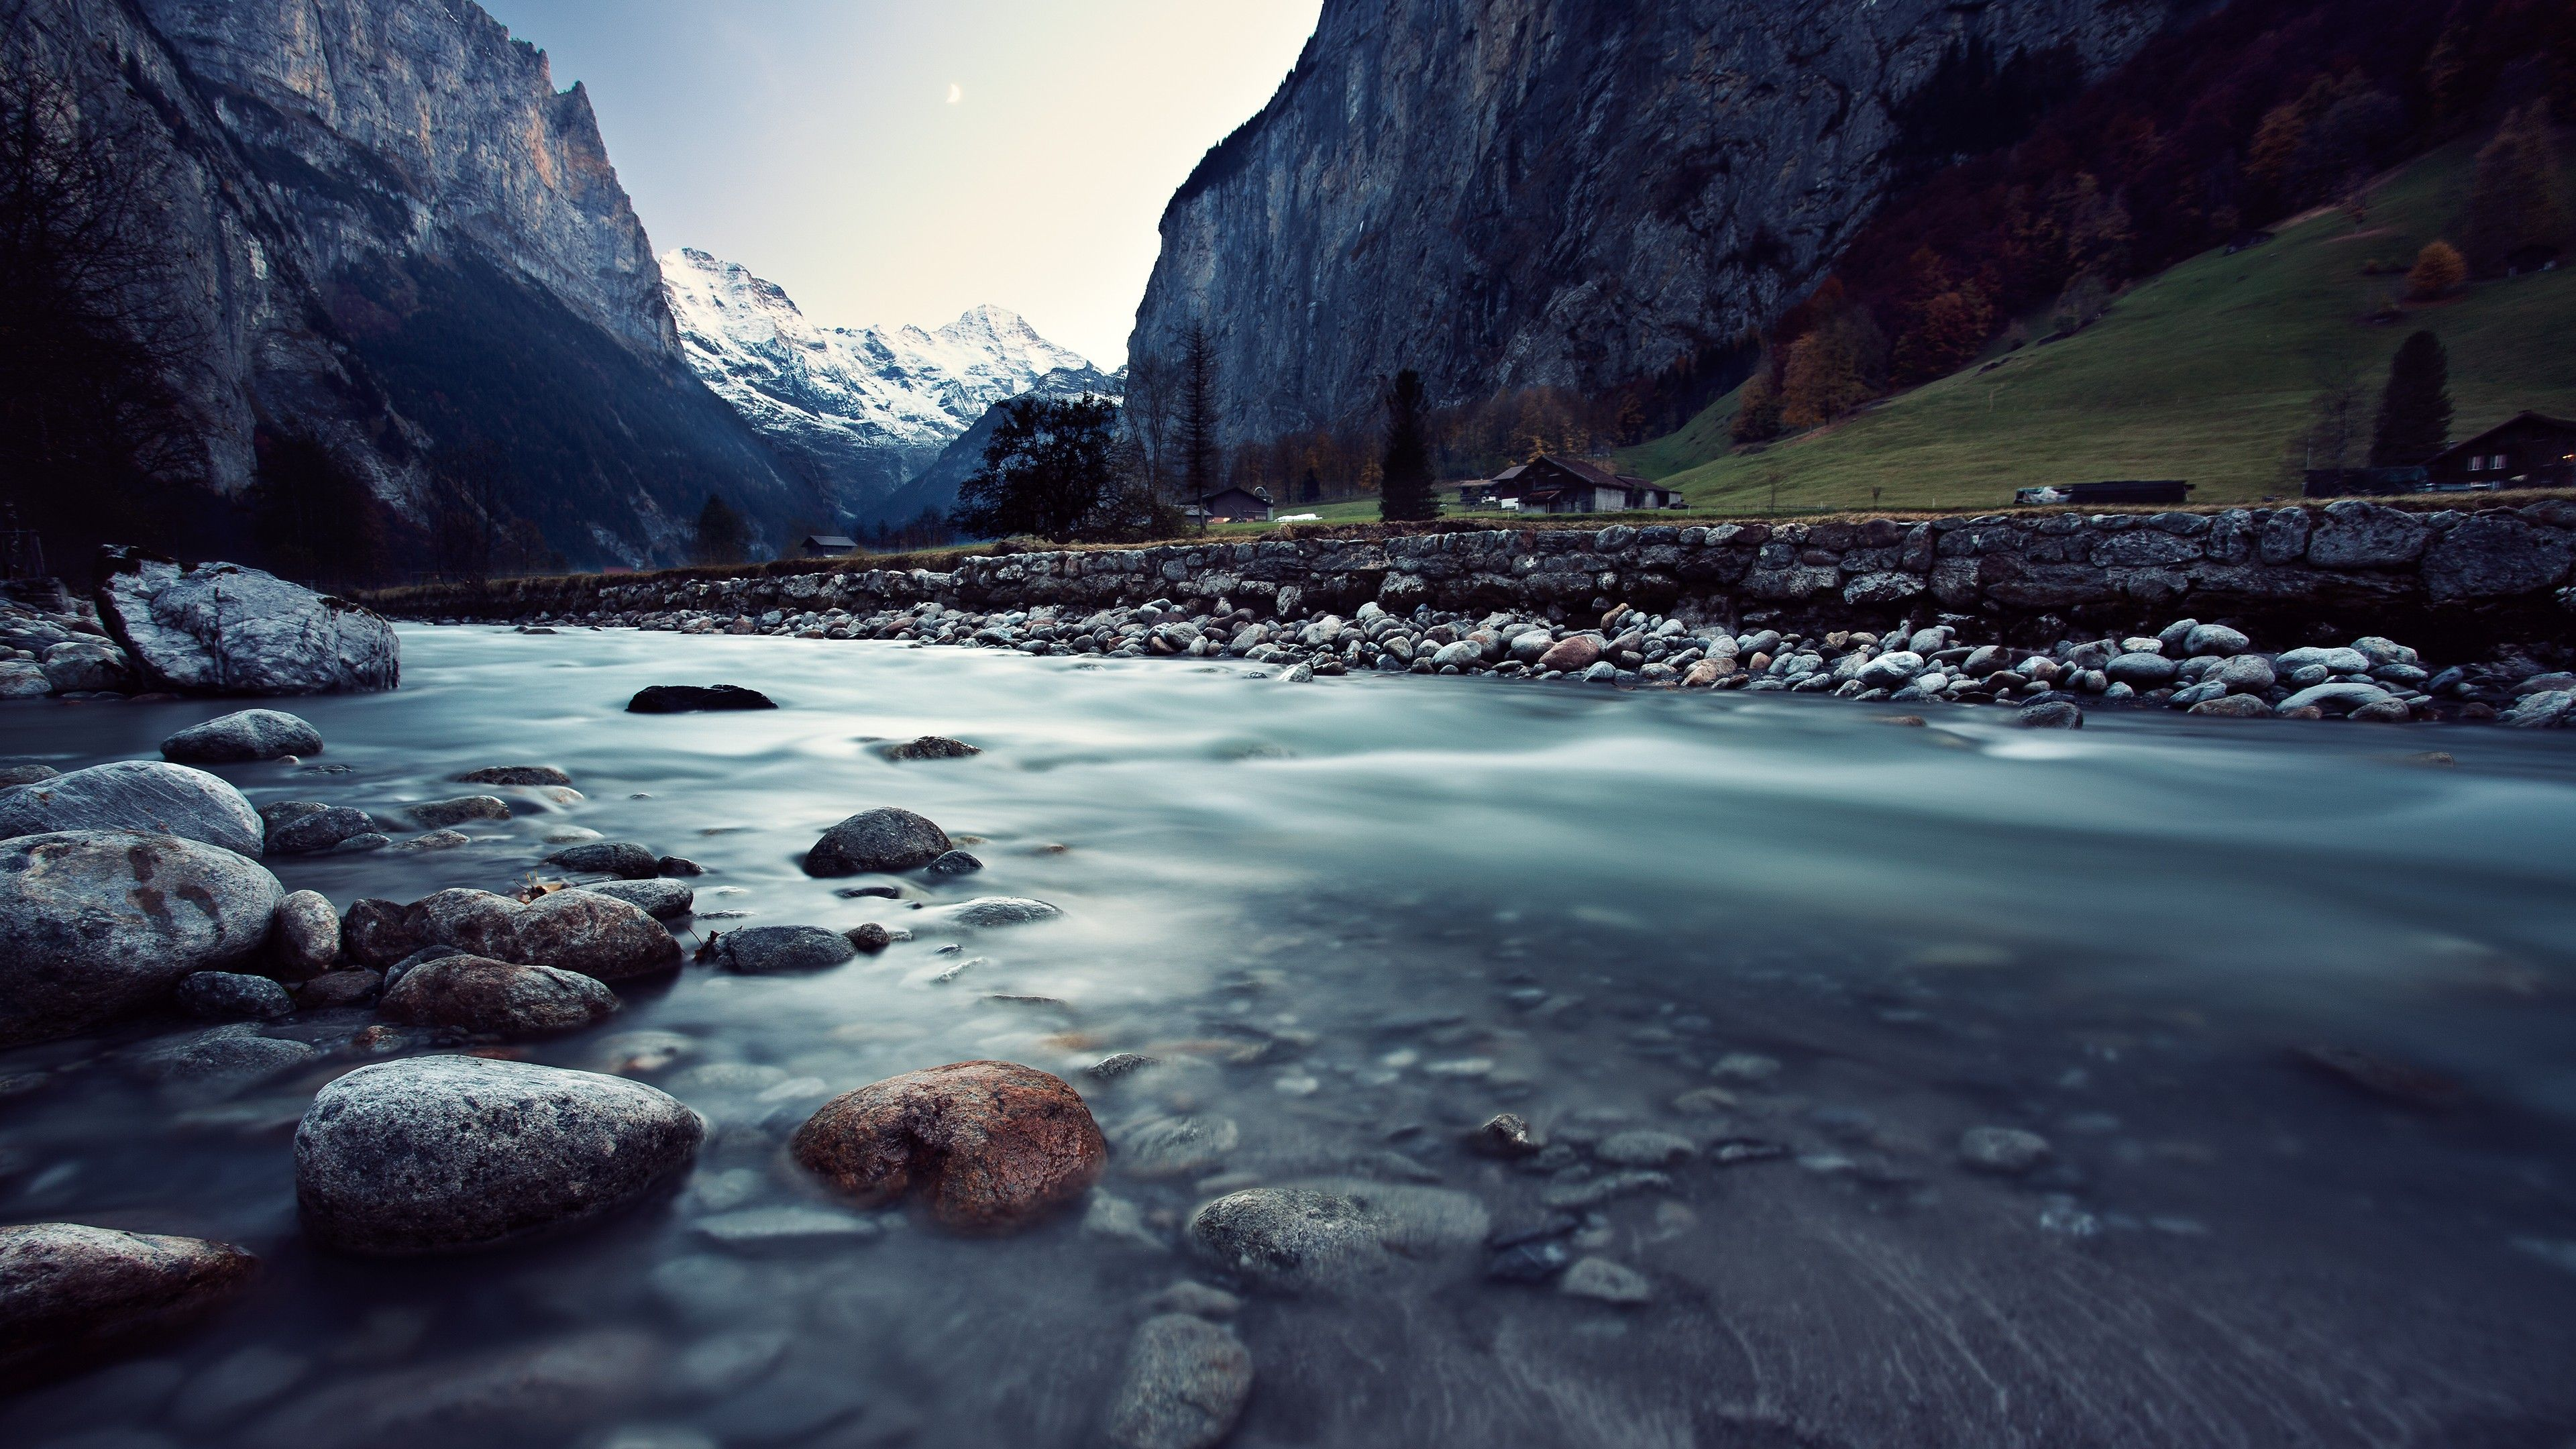 Background image 4k - The 25 Best Wallpaper 4k Resolution Ideas On Pinterest Wallpapers 4k Para Pc Iphone 5s Wallpaper Hd And Dark Wallpapers Hd